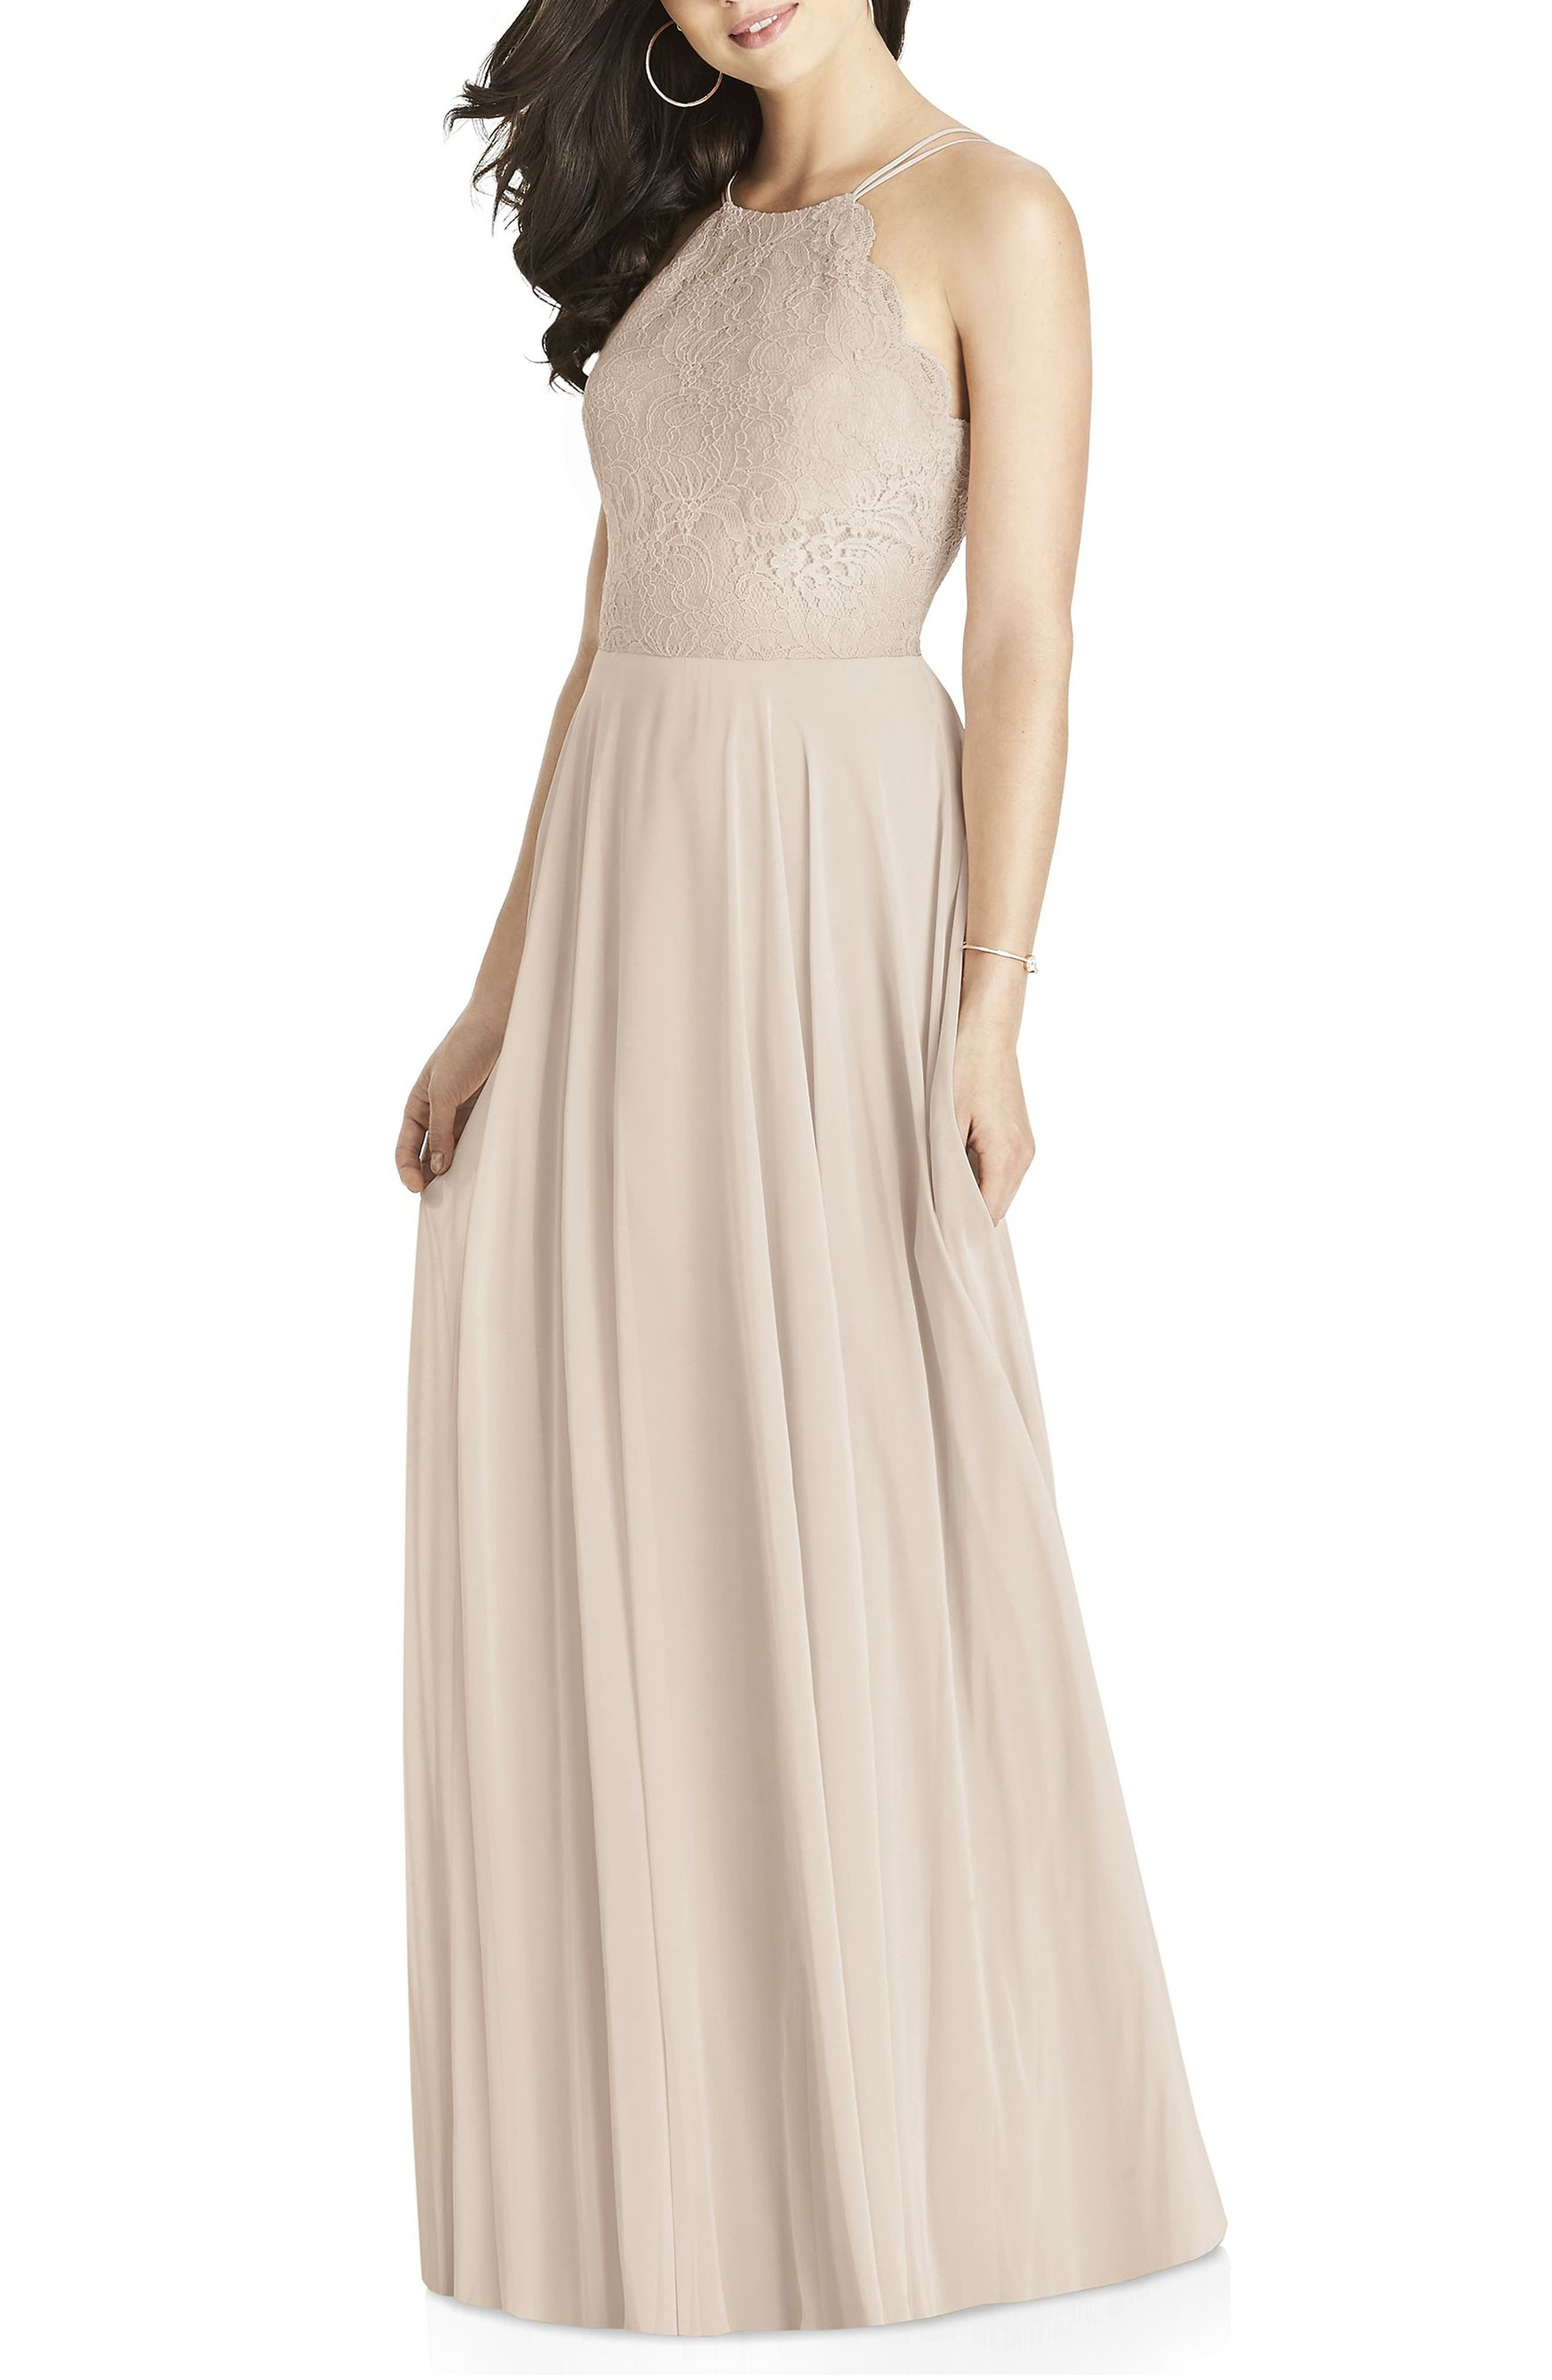 DESSY COLLECTION Lace & Chiffon Halter Gown, Main, color, CAMEO